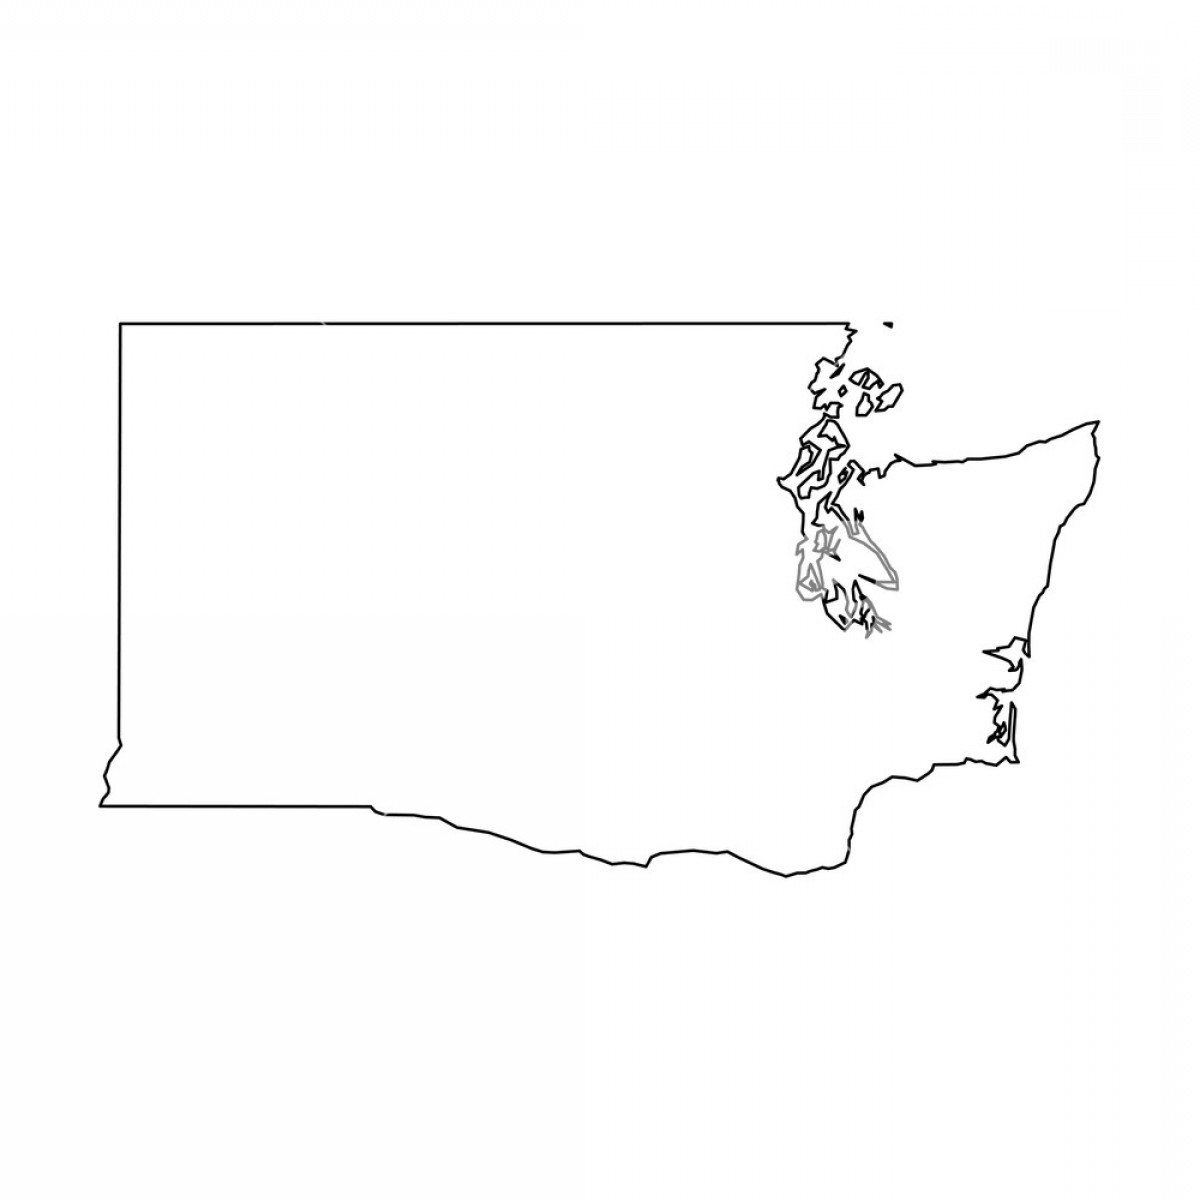 Washington State Vector: Washington State Of Usa Solid Black Outline Map Of Country Area Simple Flat Vector Illustration Rhwpulsfpvjtamrzhl